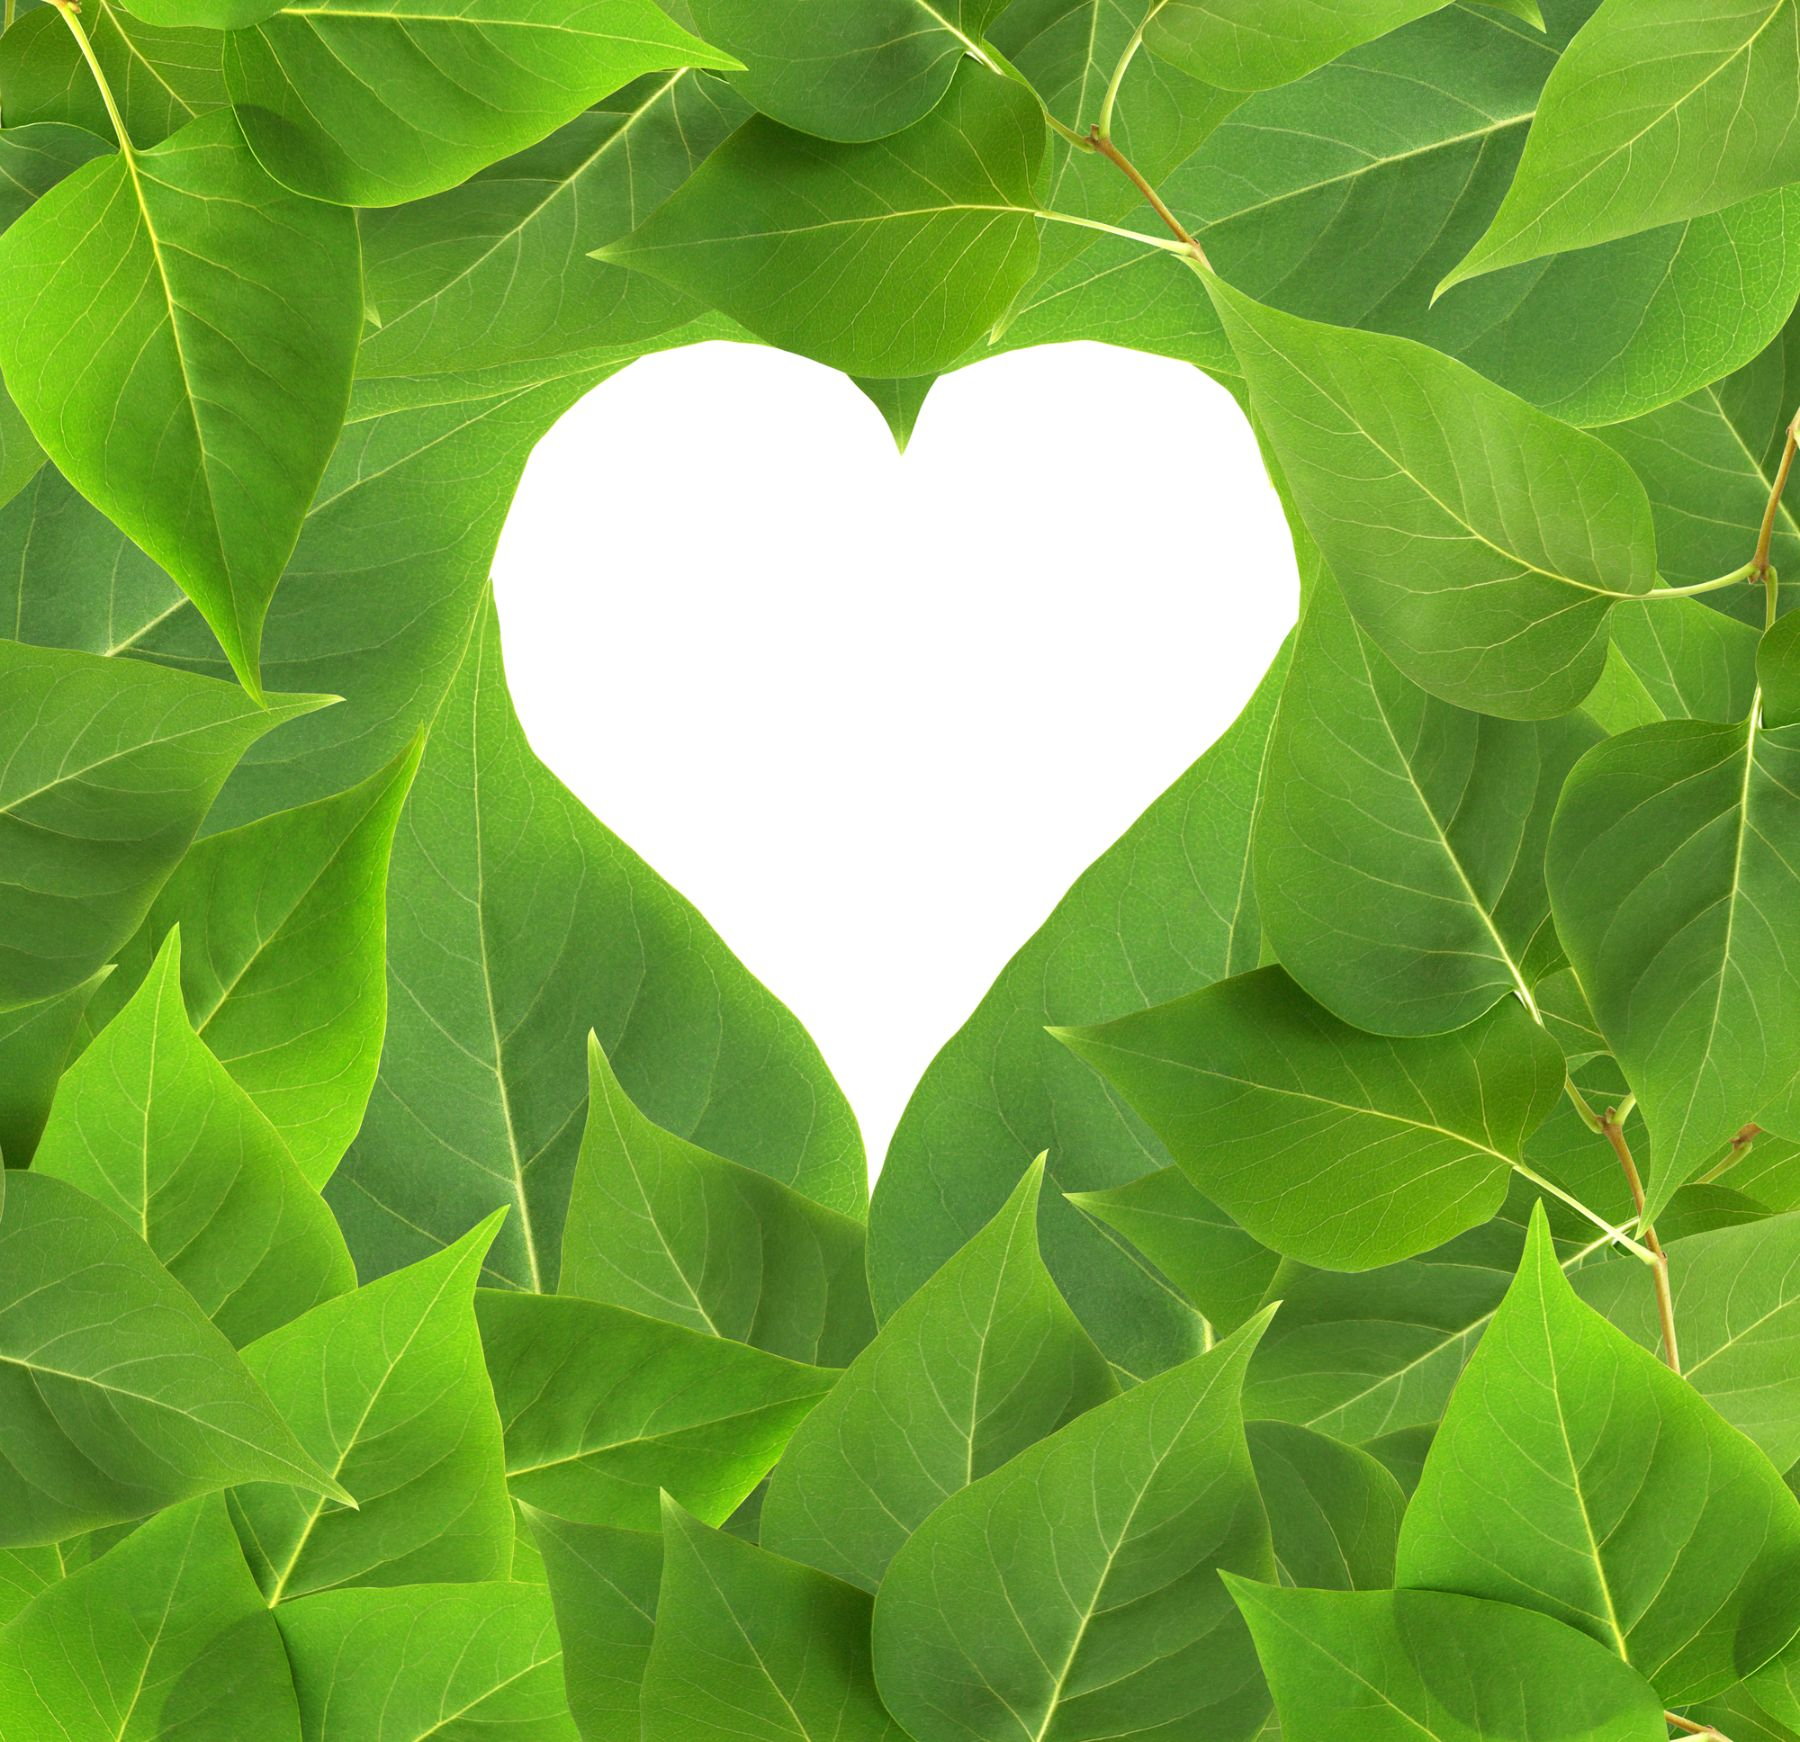 Leaves surrounding heart with white background